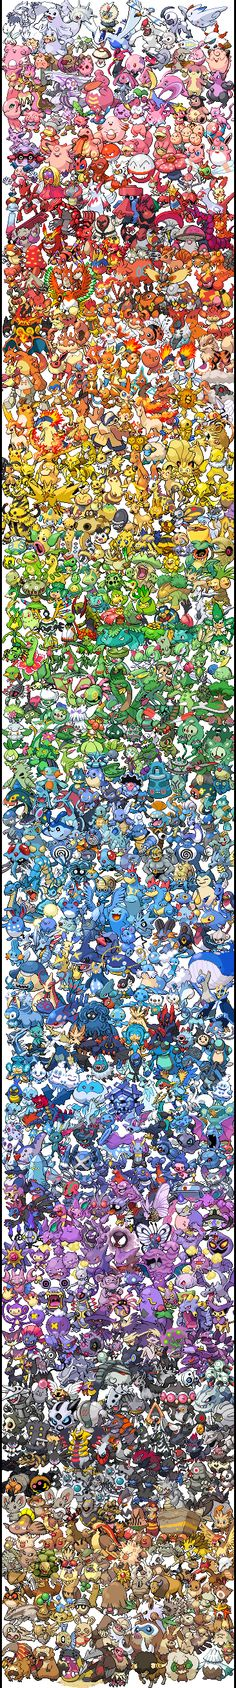 Pokemon Sprite Spectrum | All 649 Pokemon (gogoatt.tumblr.com)